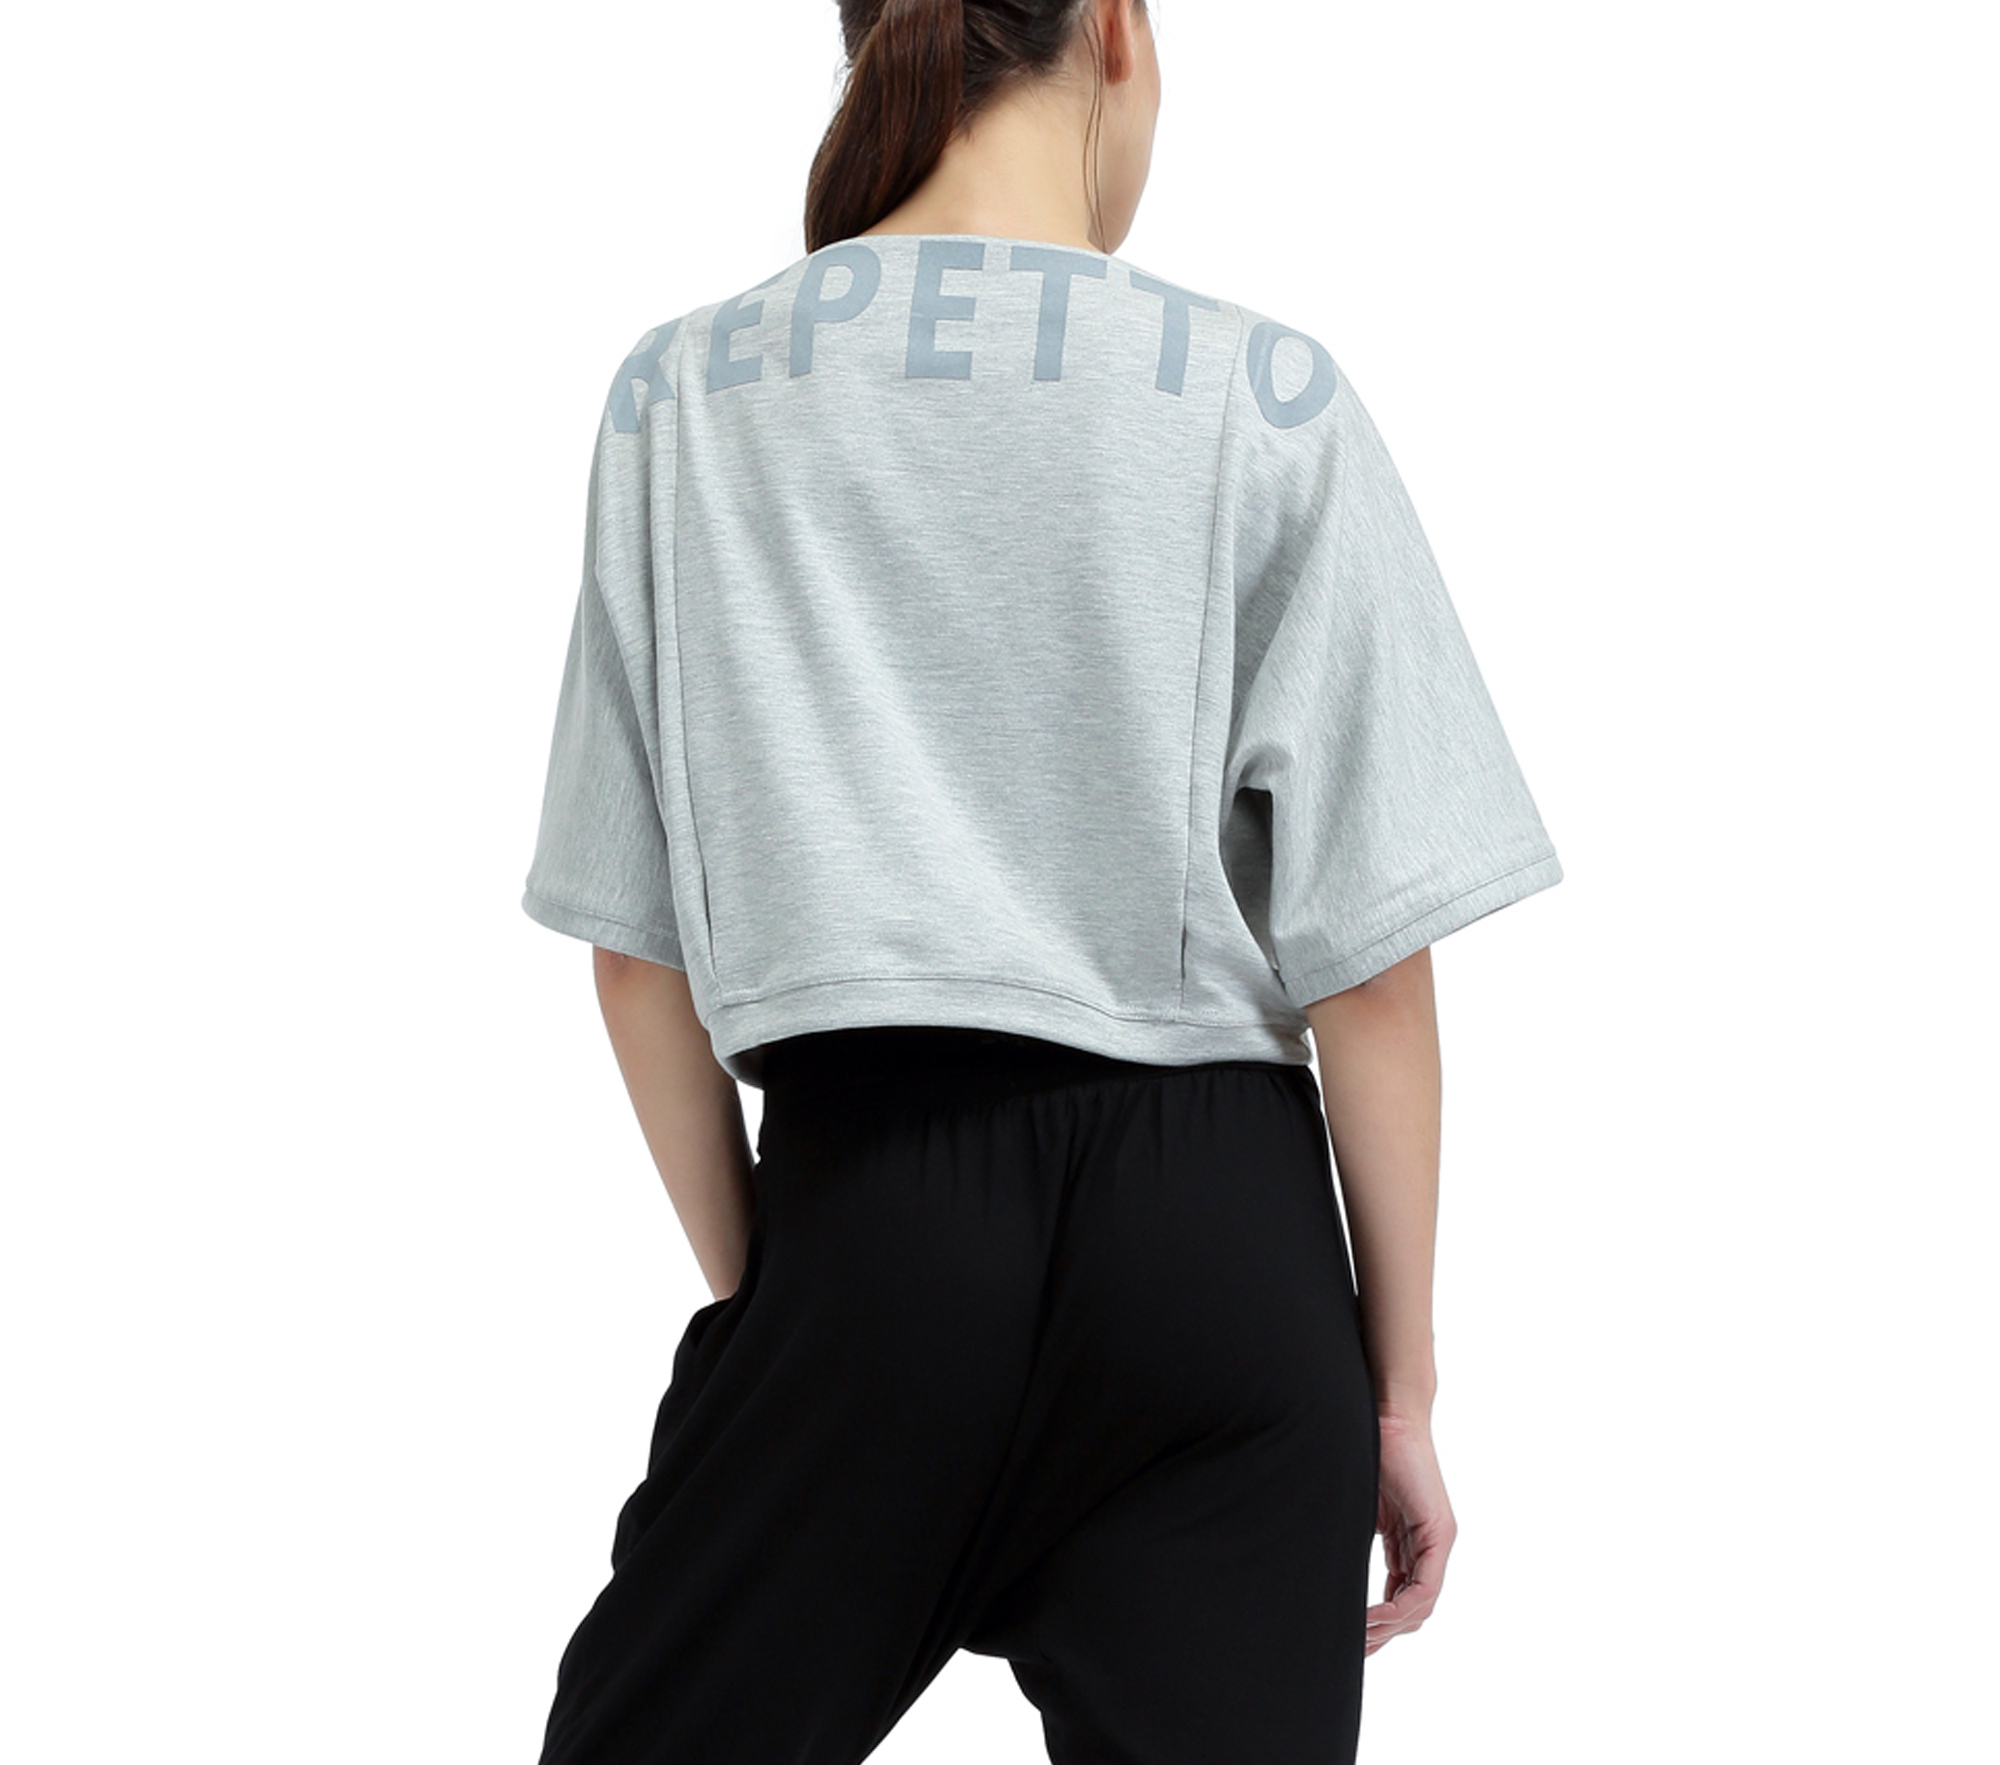 Repetto sweater